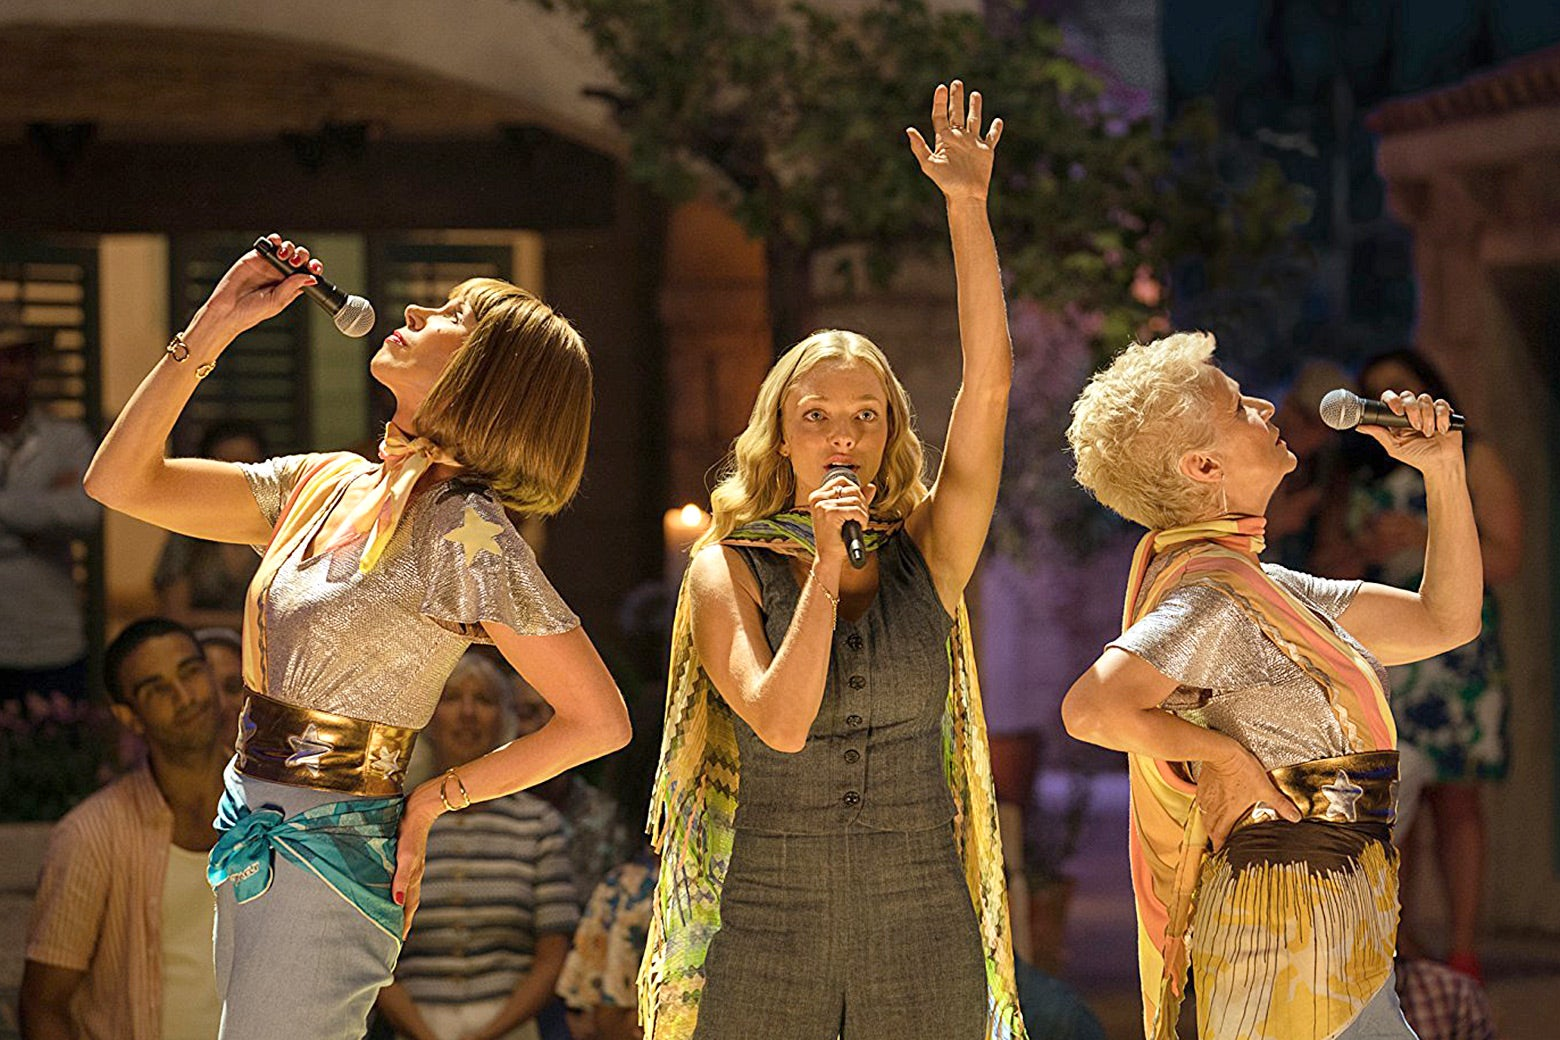 Christine Baranski, Amanda Seyfried, and Julie Walters strike poses while holding microphones in Mamma Mia! Here We Go Again.